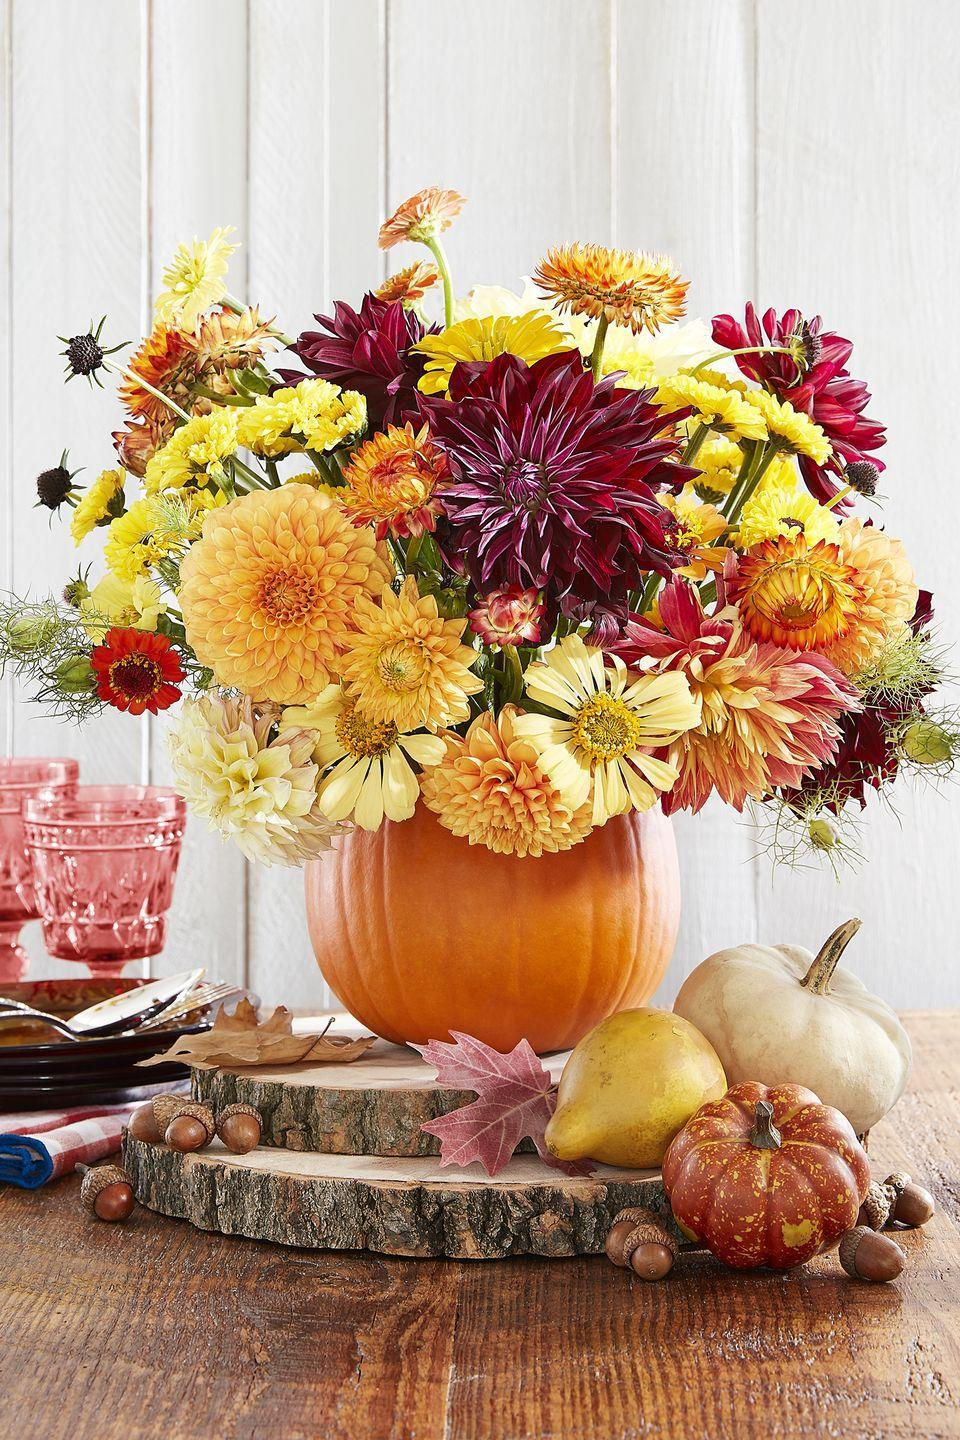 "<p>Cut the top off a pumpkin, scoop out the inside, and fill with floral foam and flowers for a stunning <a href=""https://www.countryliving.com/entertaining/g2130/thanksgiving-centerpieces/"" rel=""nofollow noopener"" target=""_blank"" data-ylk=""slk:DIY Thanksgiving centerpiece"" class=""link rapid-noclick-resp"">DIY Thanksgiving centerpiece</a>.</p><p><a class=""link rapid-noclick-resp"" href=""https://go.redirectingat.com?id=74968X1596630&url=https%3A%2F%2Fbouqs.com%2F&sref=https%3A%2F%2Fwww.countryliving.com%2Fentertaining%2Fg2063%2Fthanksgiving-craft-ideas%2F"" rel=""nofollow noopener"" target=""_blank"" data-ylk=""slk:SHOP FLOWERS"">SHOP FLOWERS</a></p>"